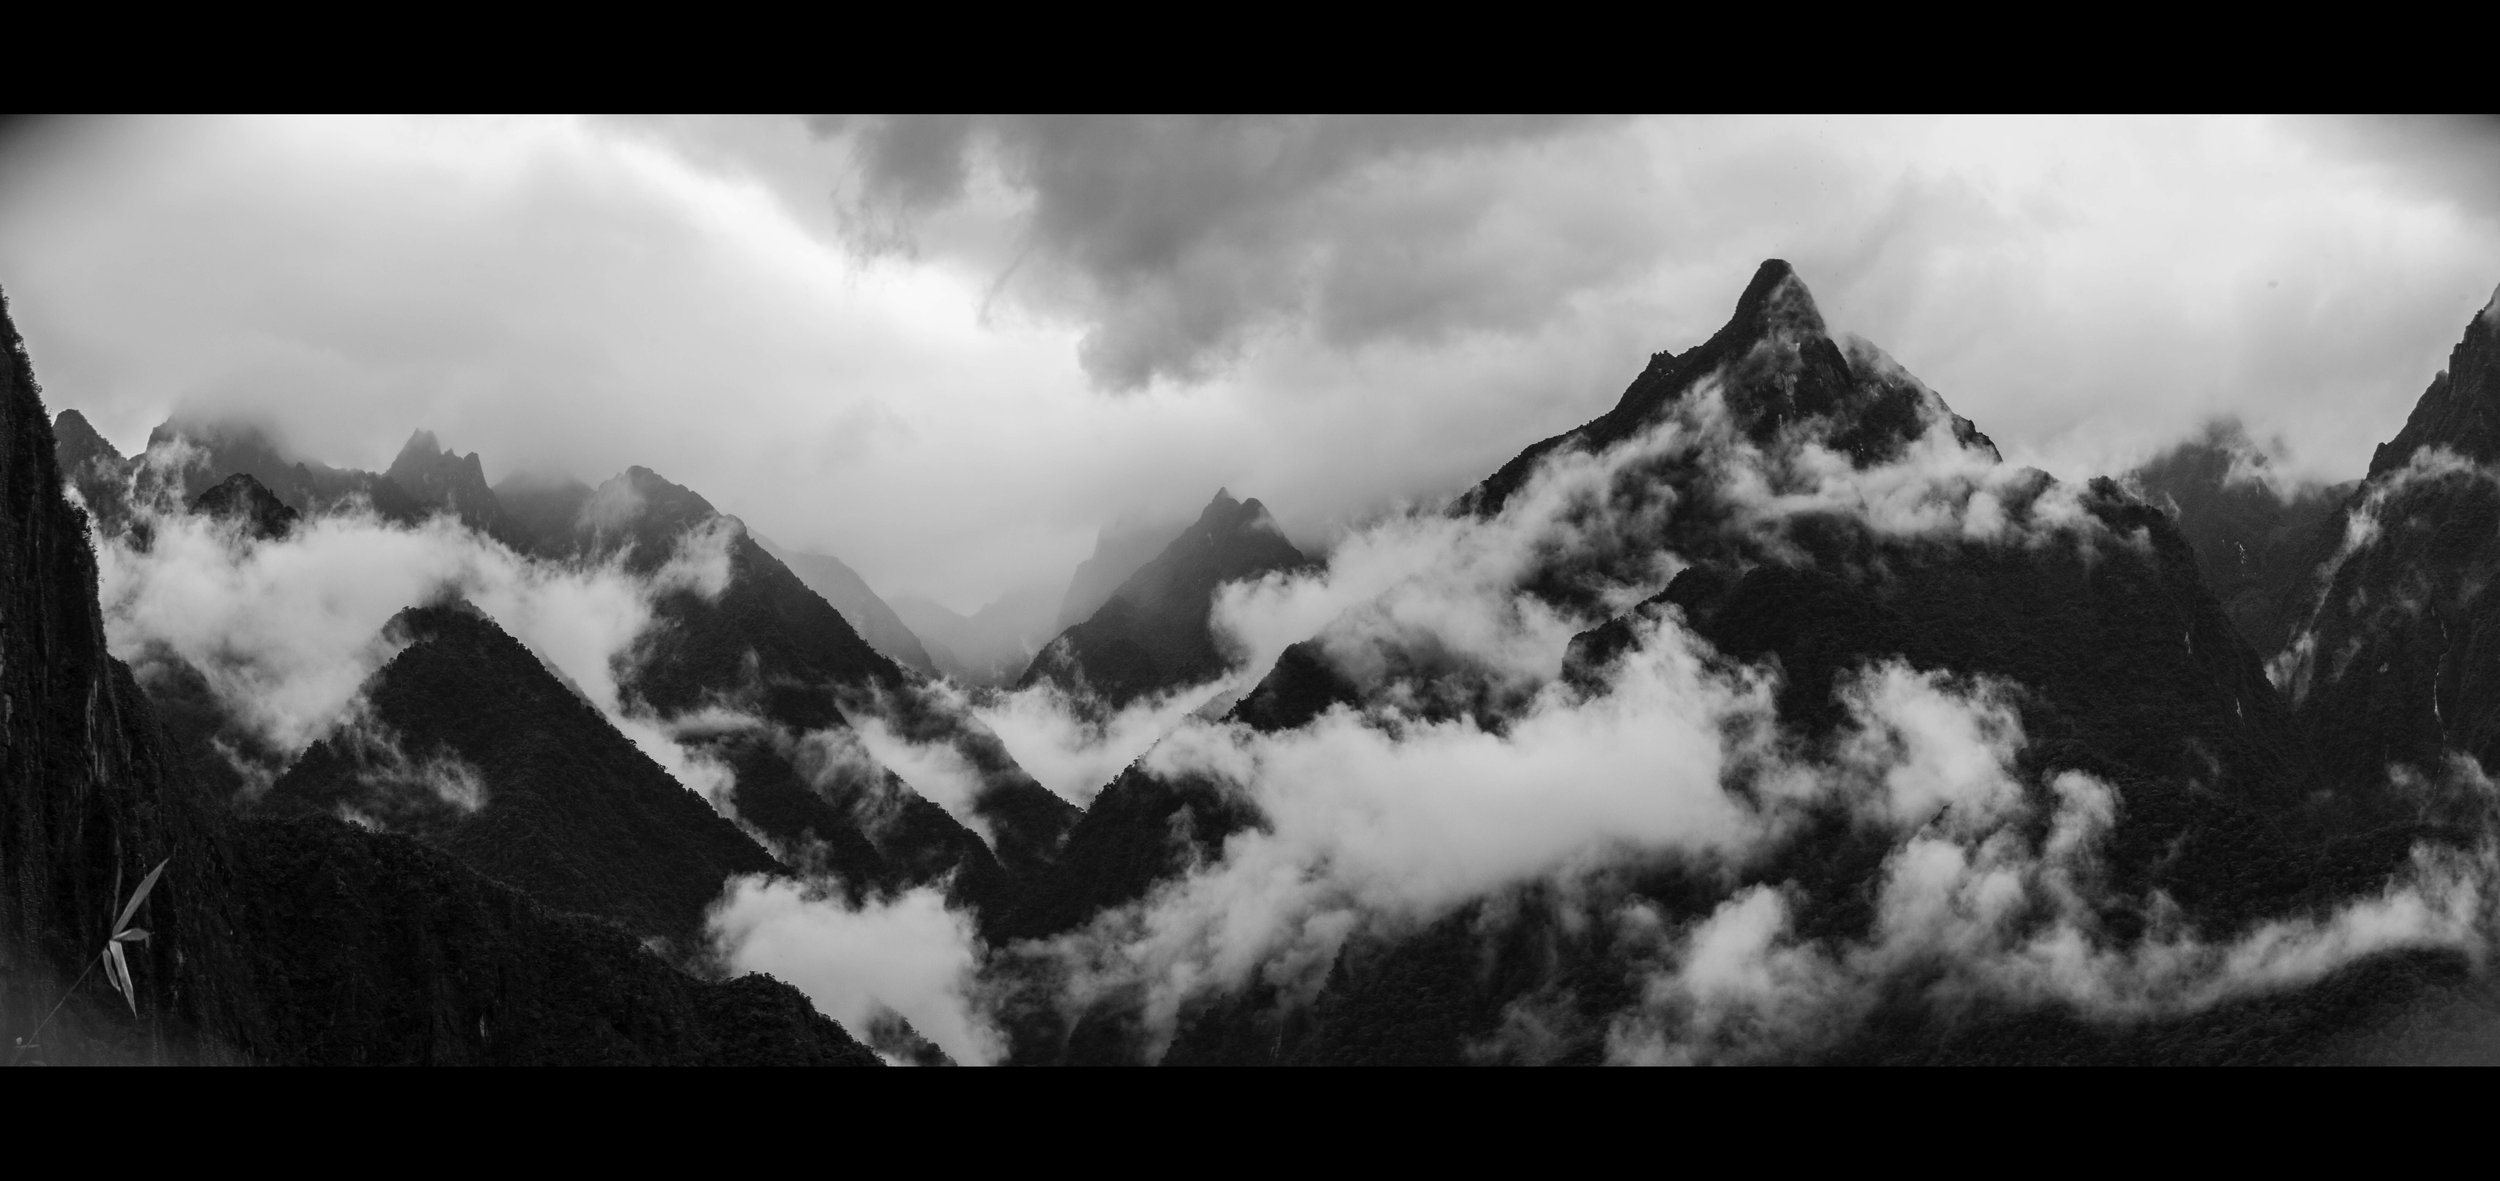 bw_mountains_small.jpg